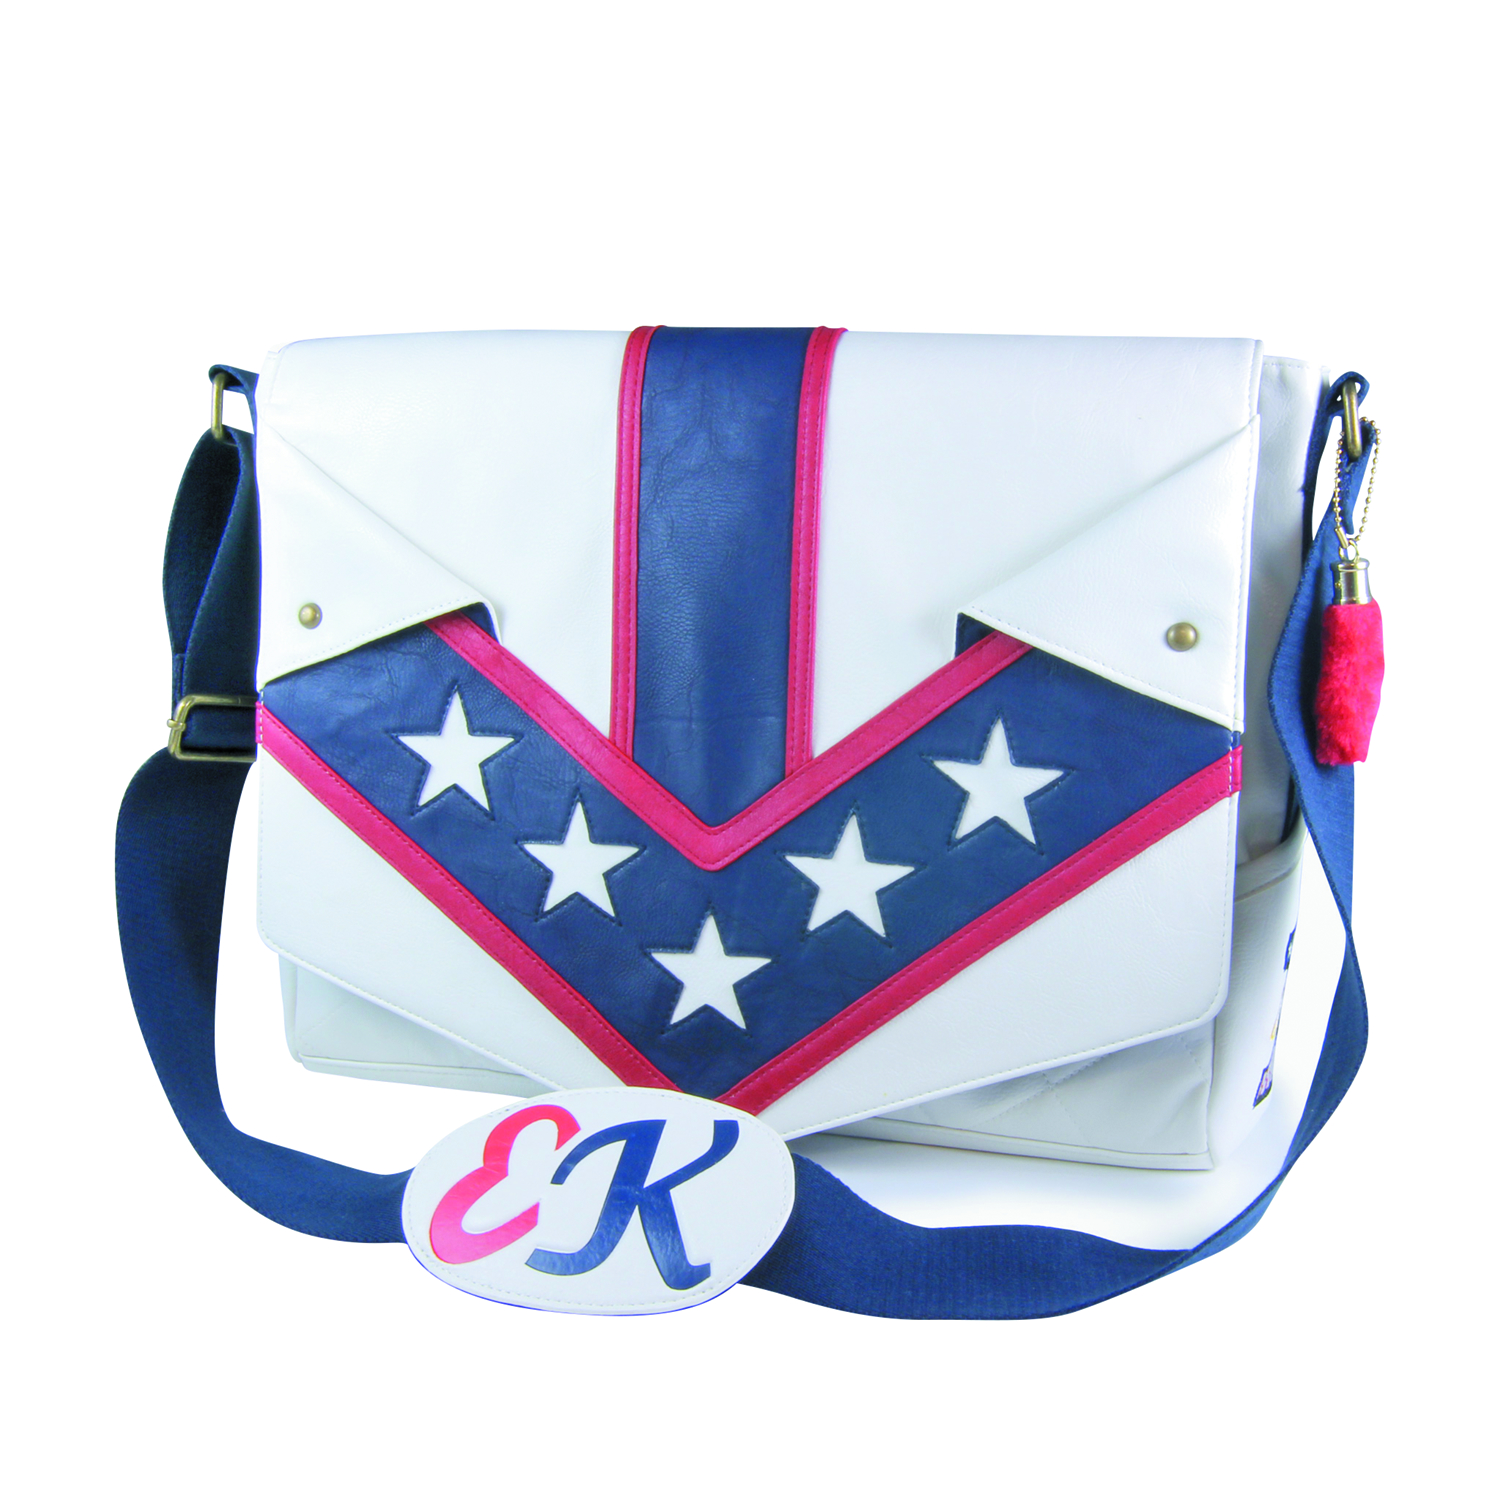 EVEL KNIEVEL JUMPSUIT MESSENGER BAG